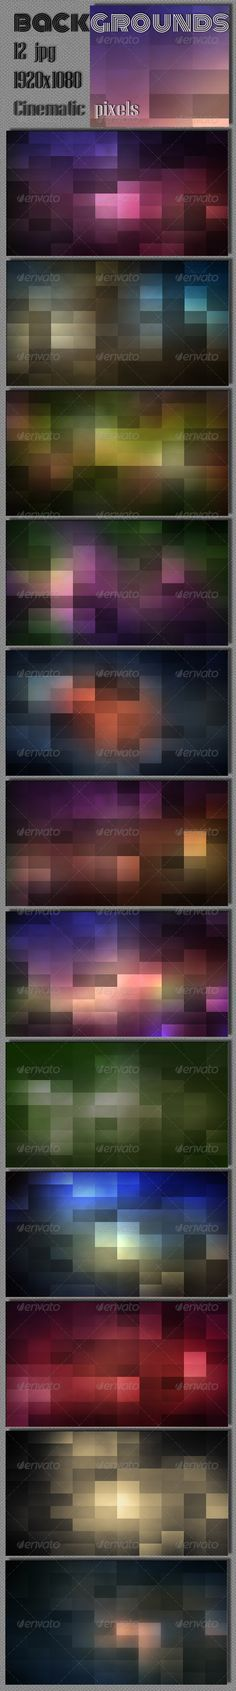 Pixel Cinematic Wallpaper — Photoshop PSD #polygonal #surface • Available here → https://graphicriver.net/item/pixel-cinematic-wallpaper/7901621?ref=pxcr